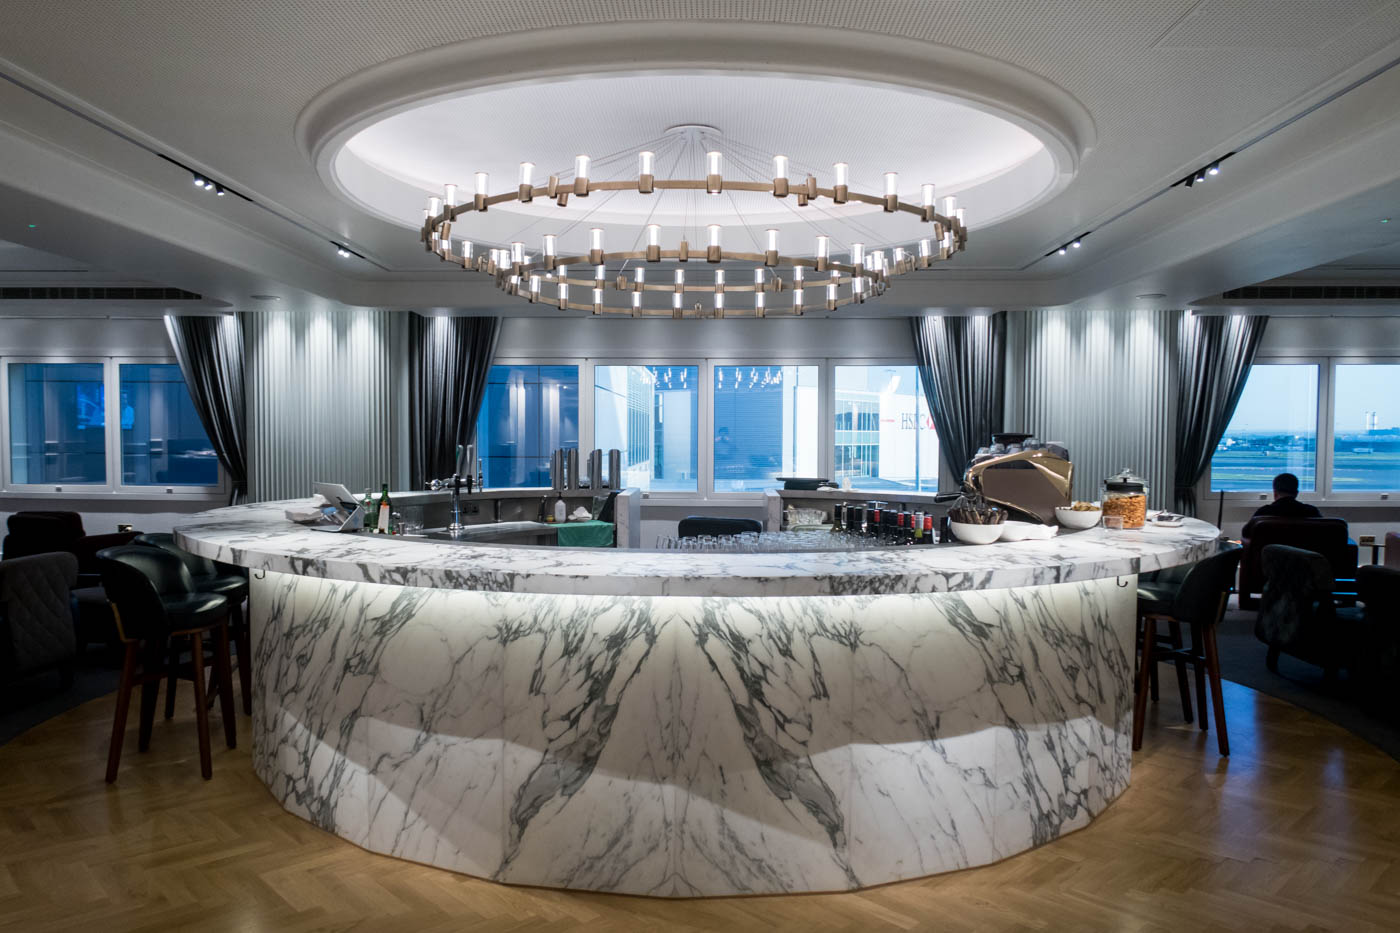 The Qantas London Lounge Circular Bar